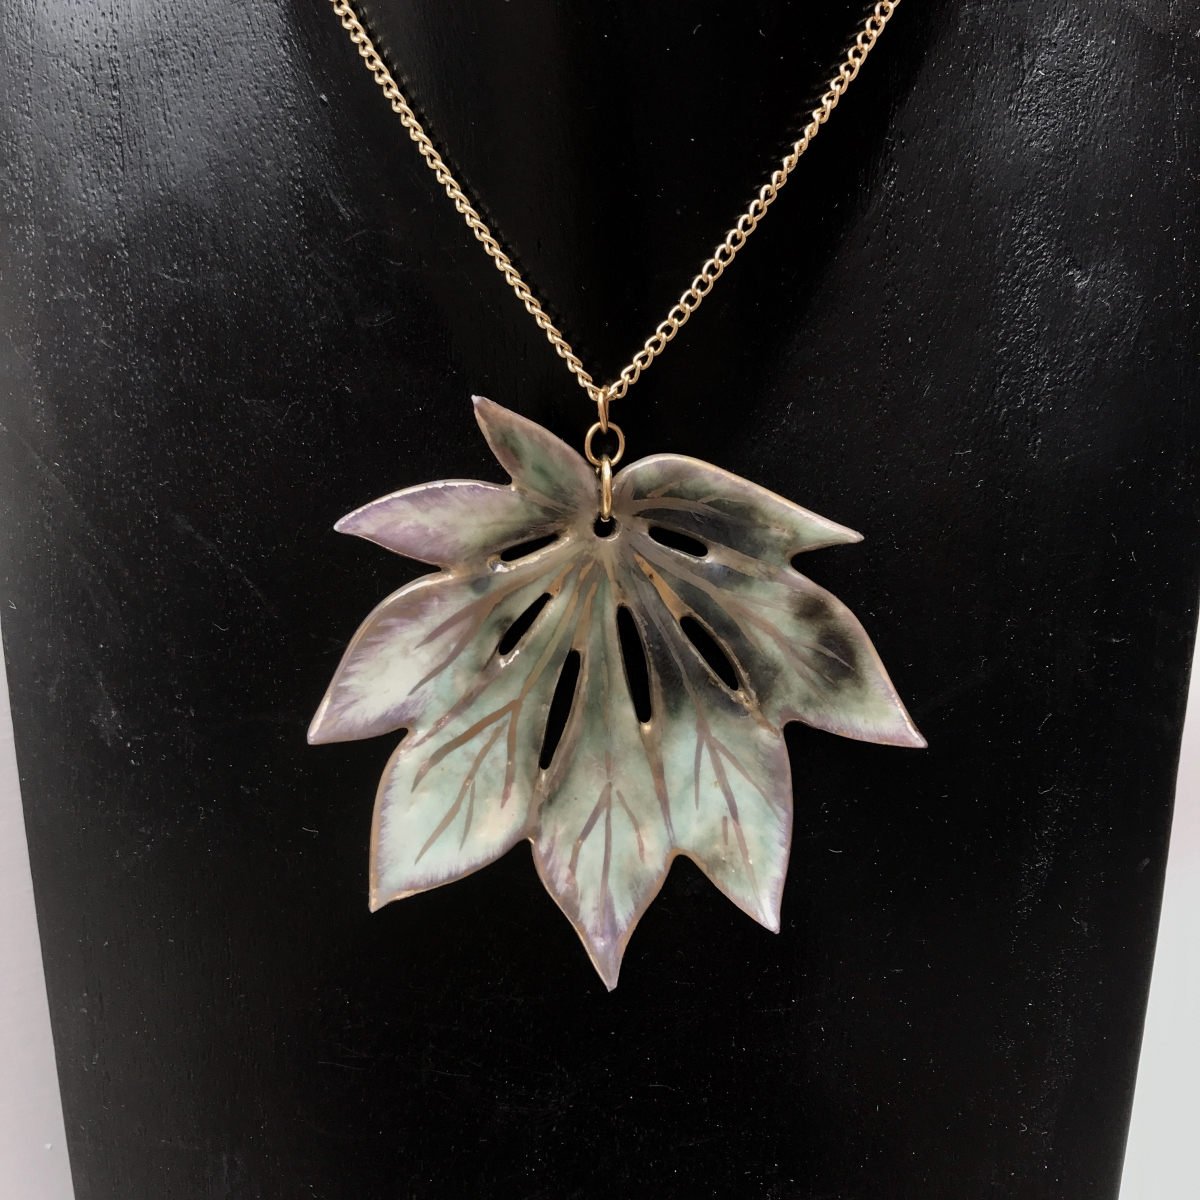 Leaf Necklace by Sonya Ceramic Art 'Ceramics Inspired By Nature'